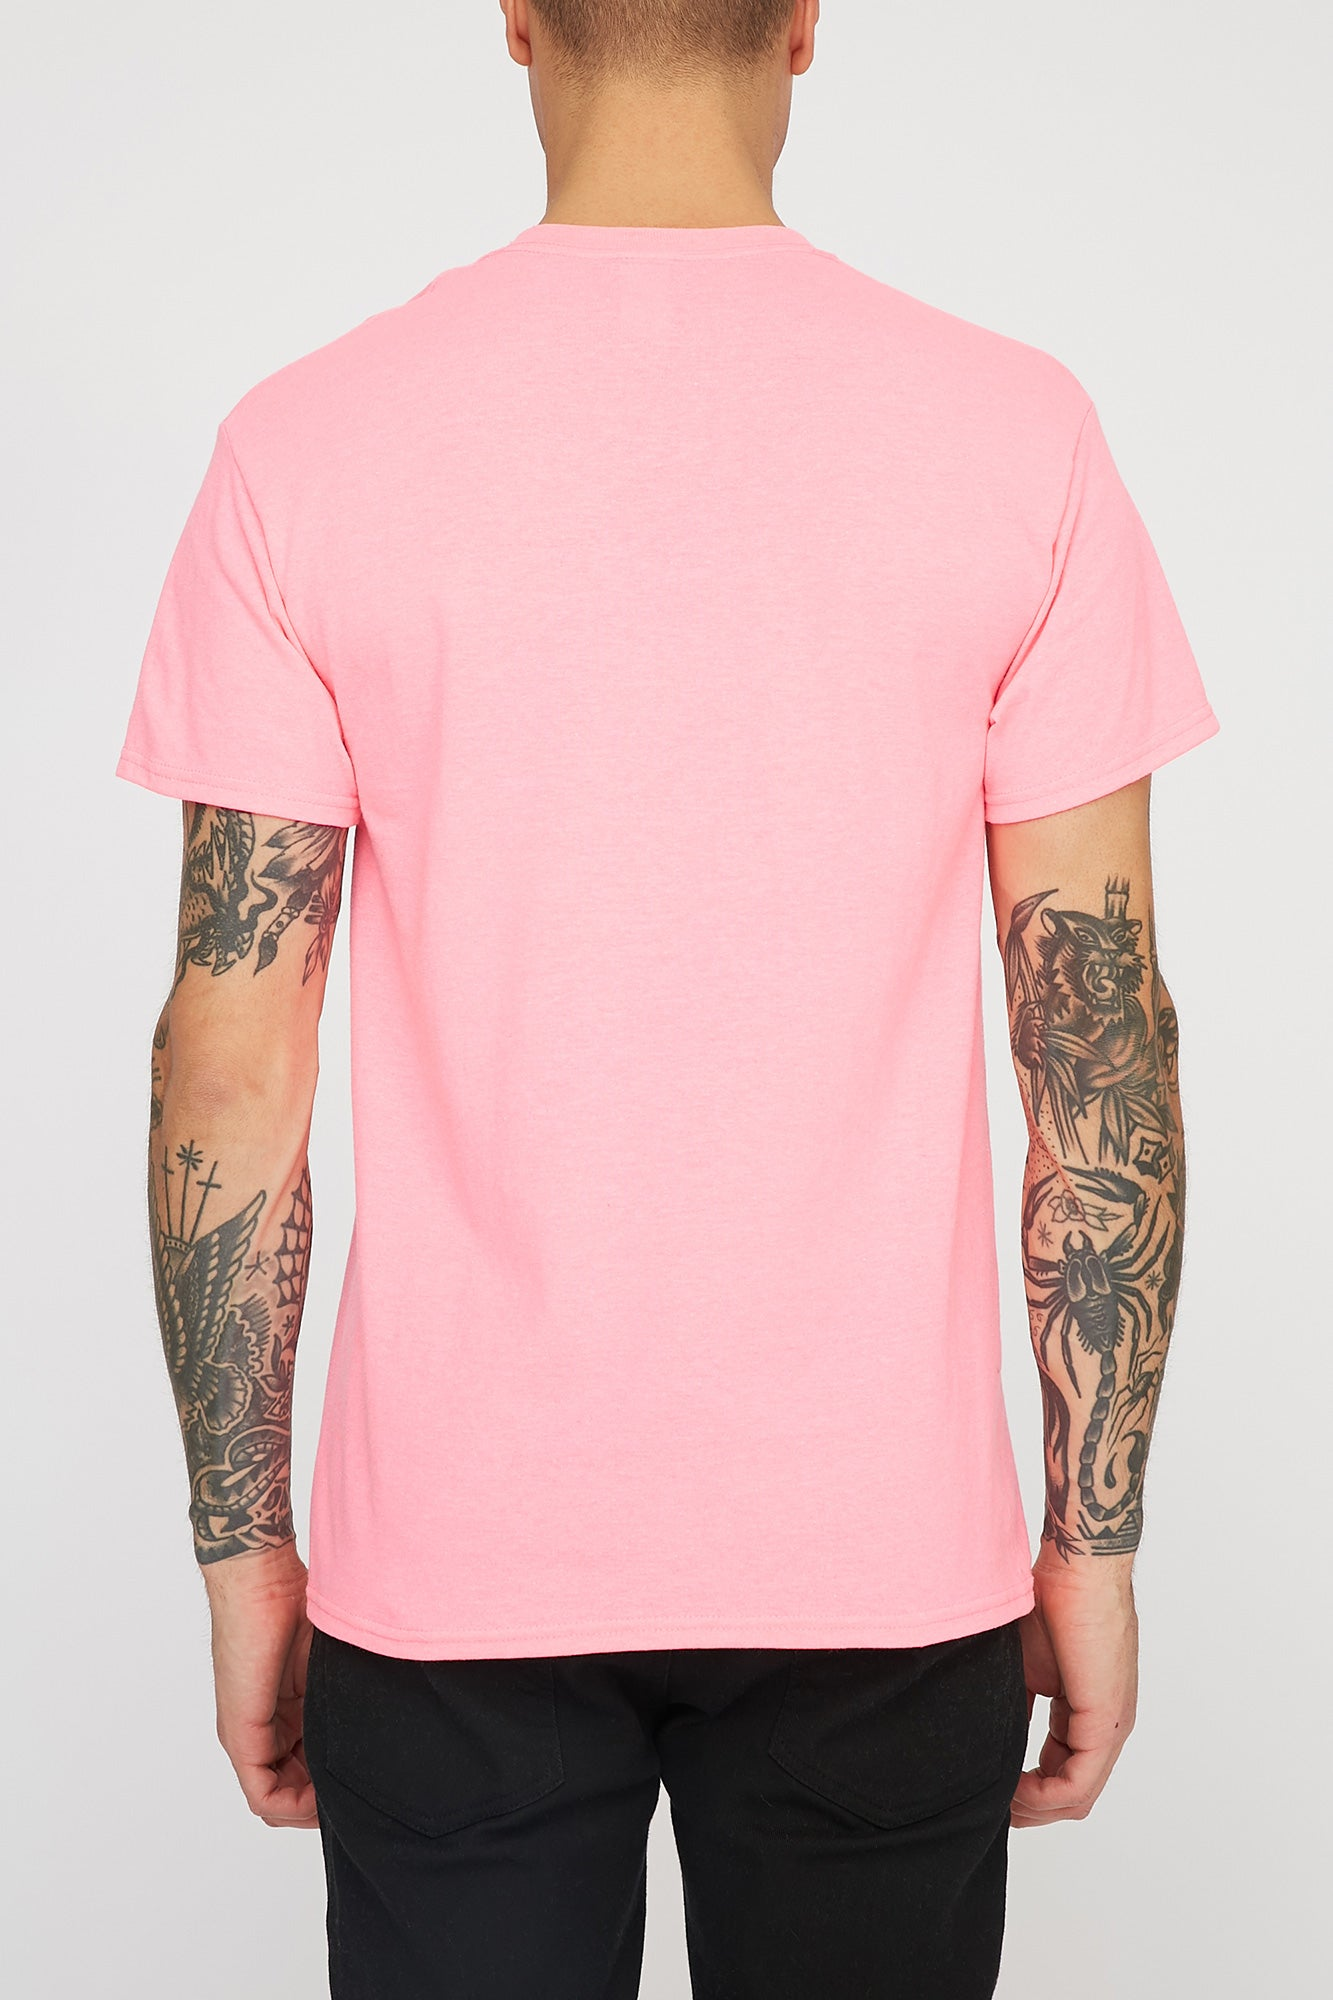 Trasher Skate Magazine Mens T-Shirt